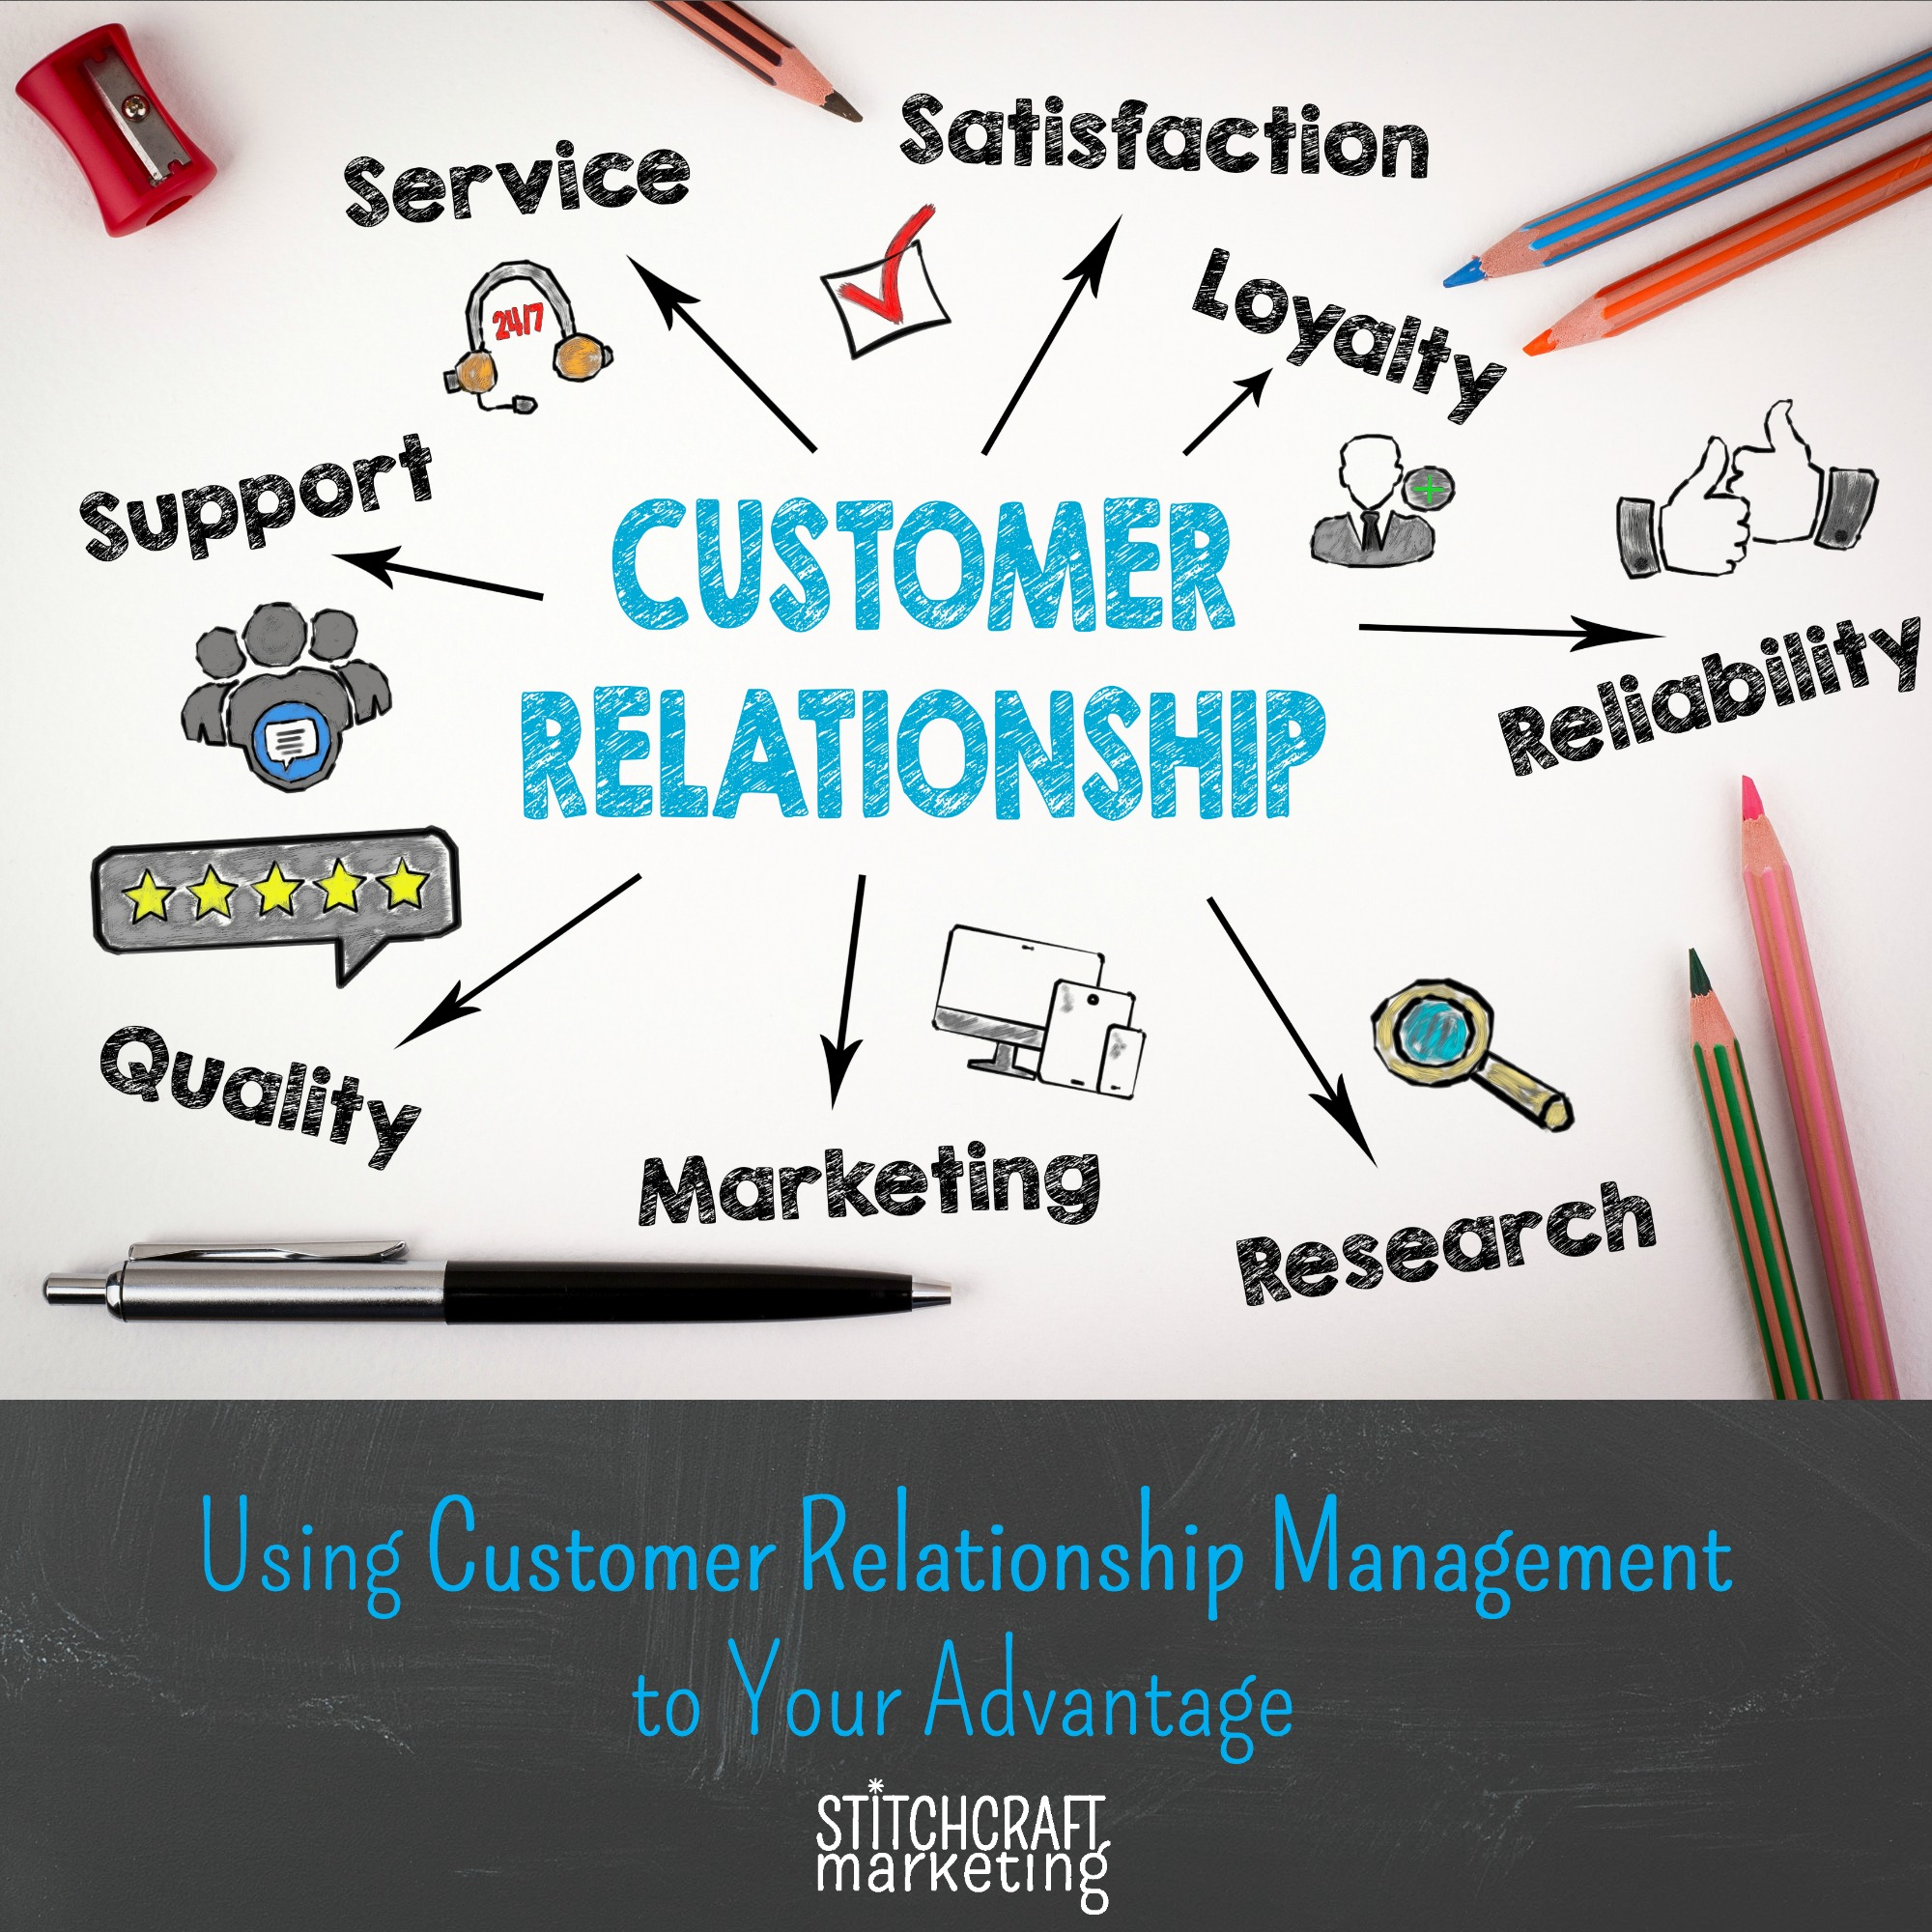 Using Customer Relationship Management to your Advantage